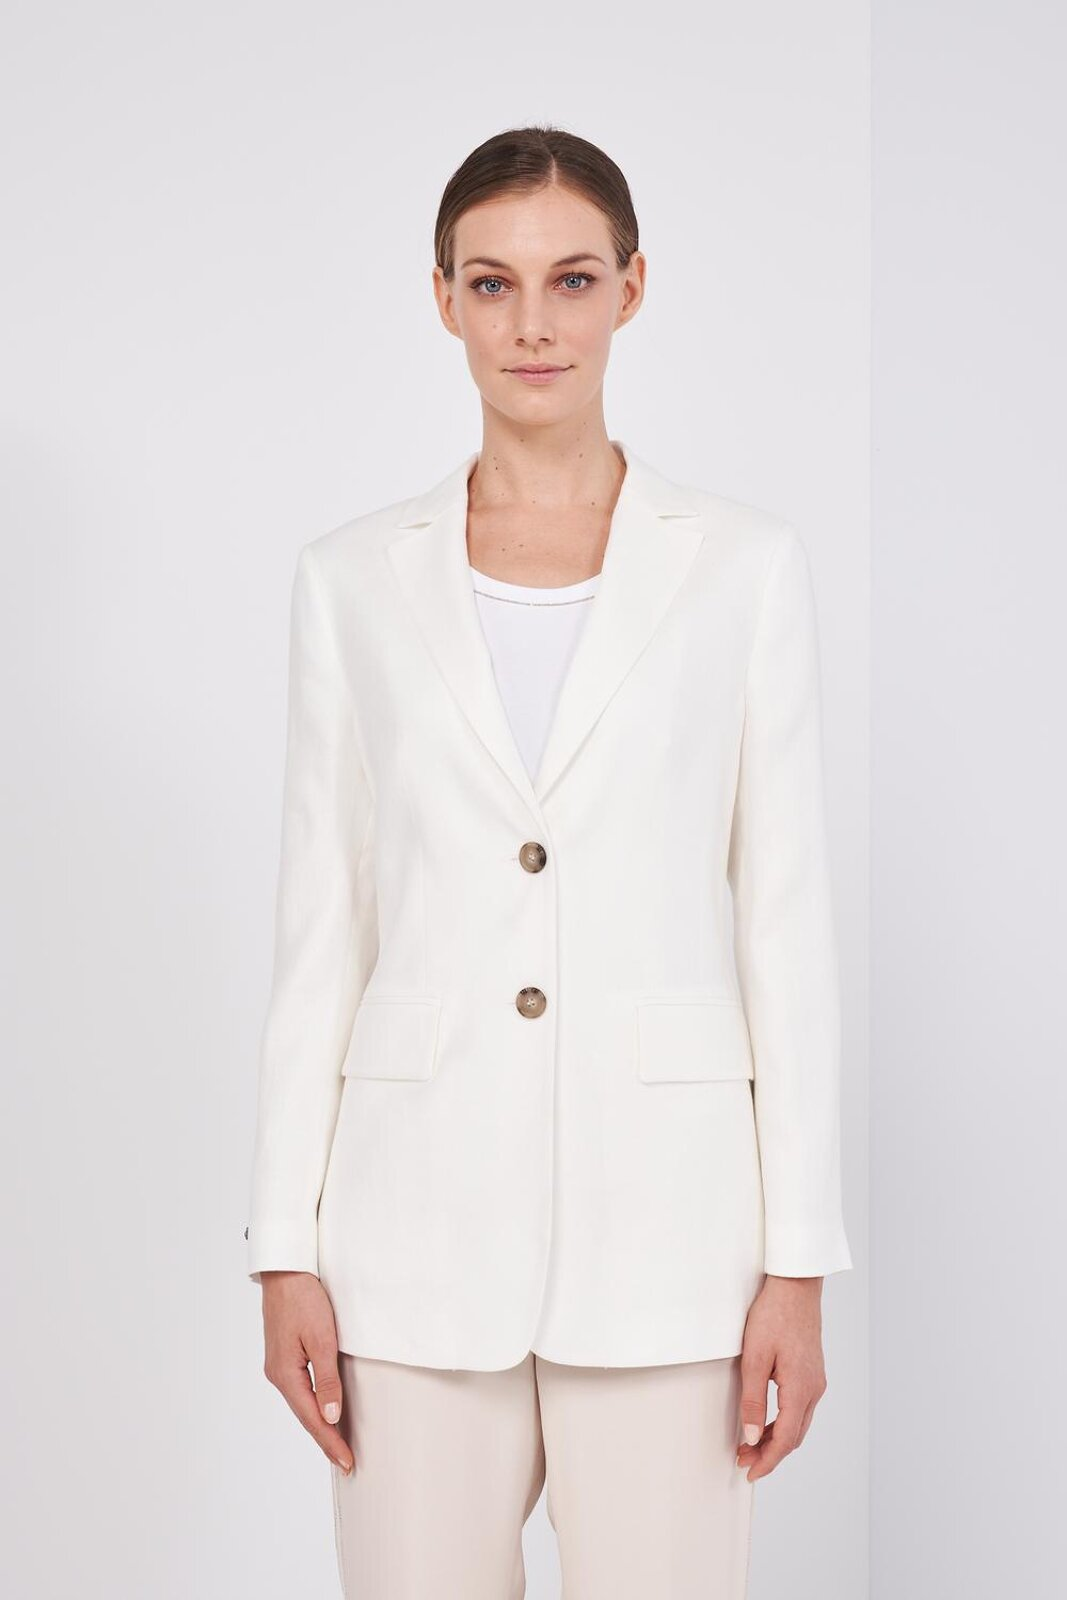 Long-Sleeved Structured Blazer Jacket In Pure Linen. Two Front Buttons, Side Pockets, Leather Detail On The Tip. Regular fit. - Peserico